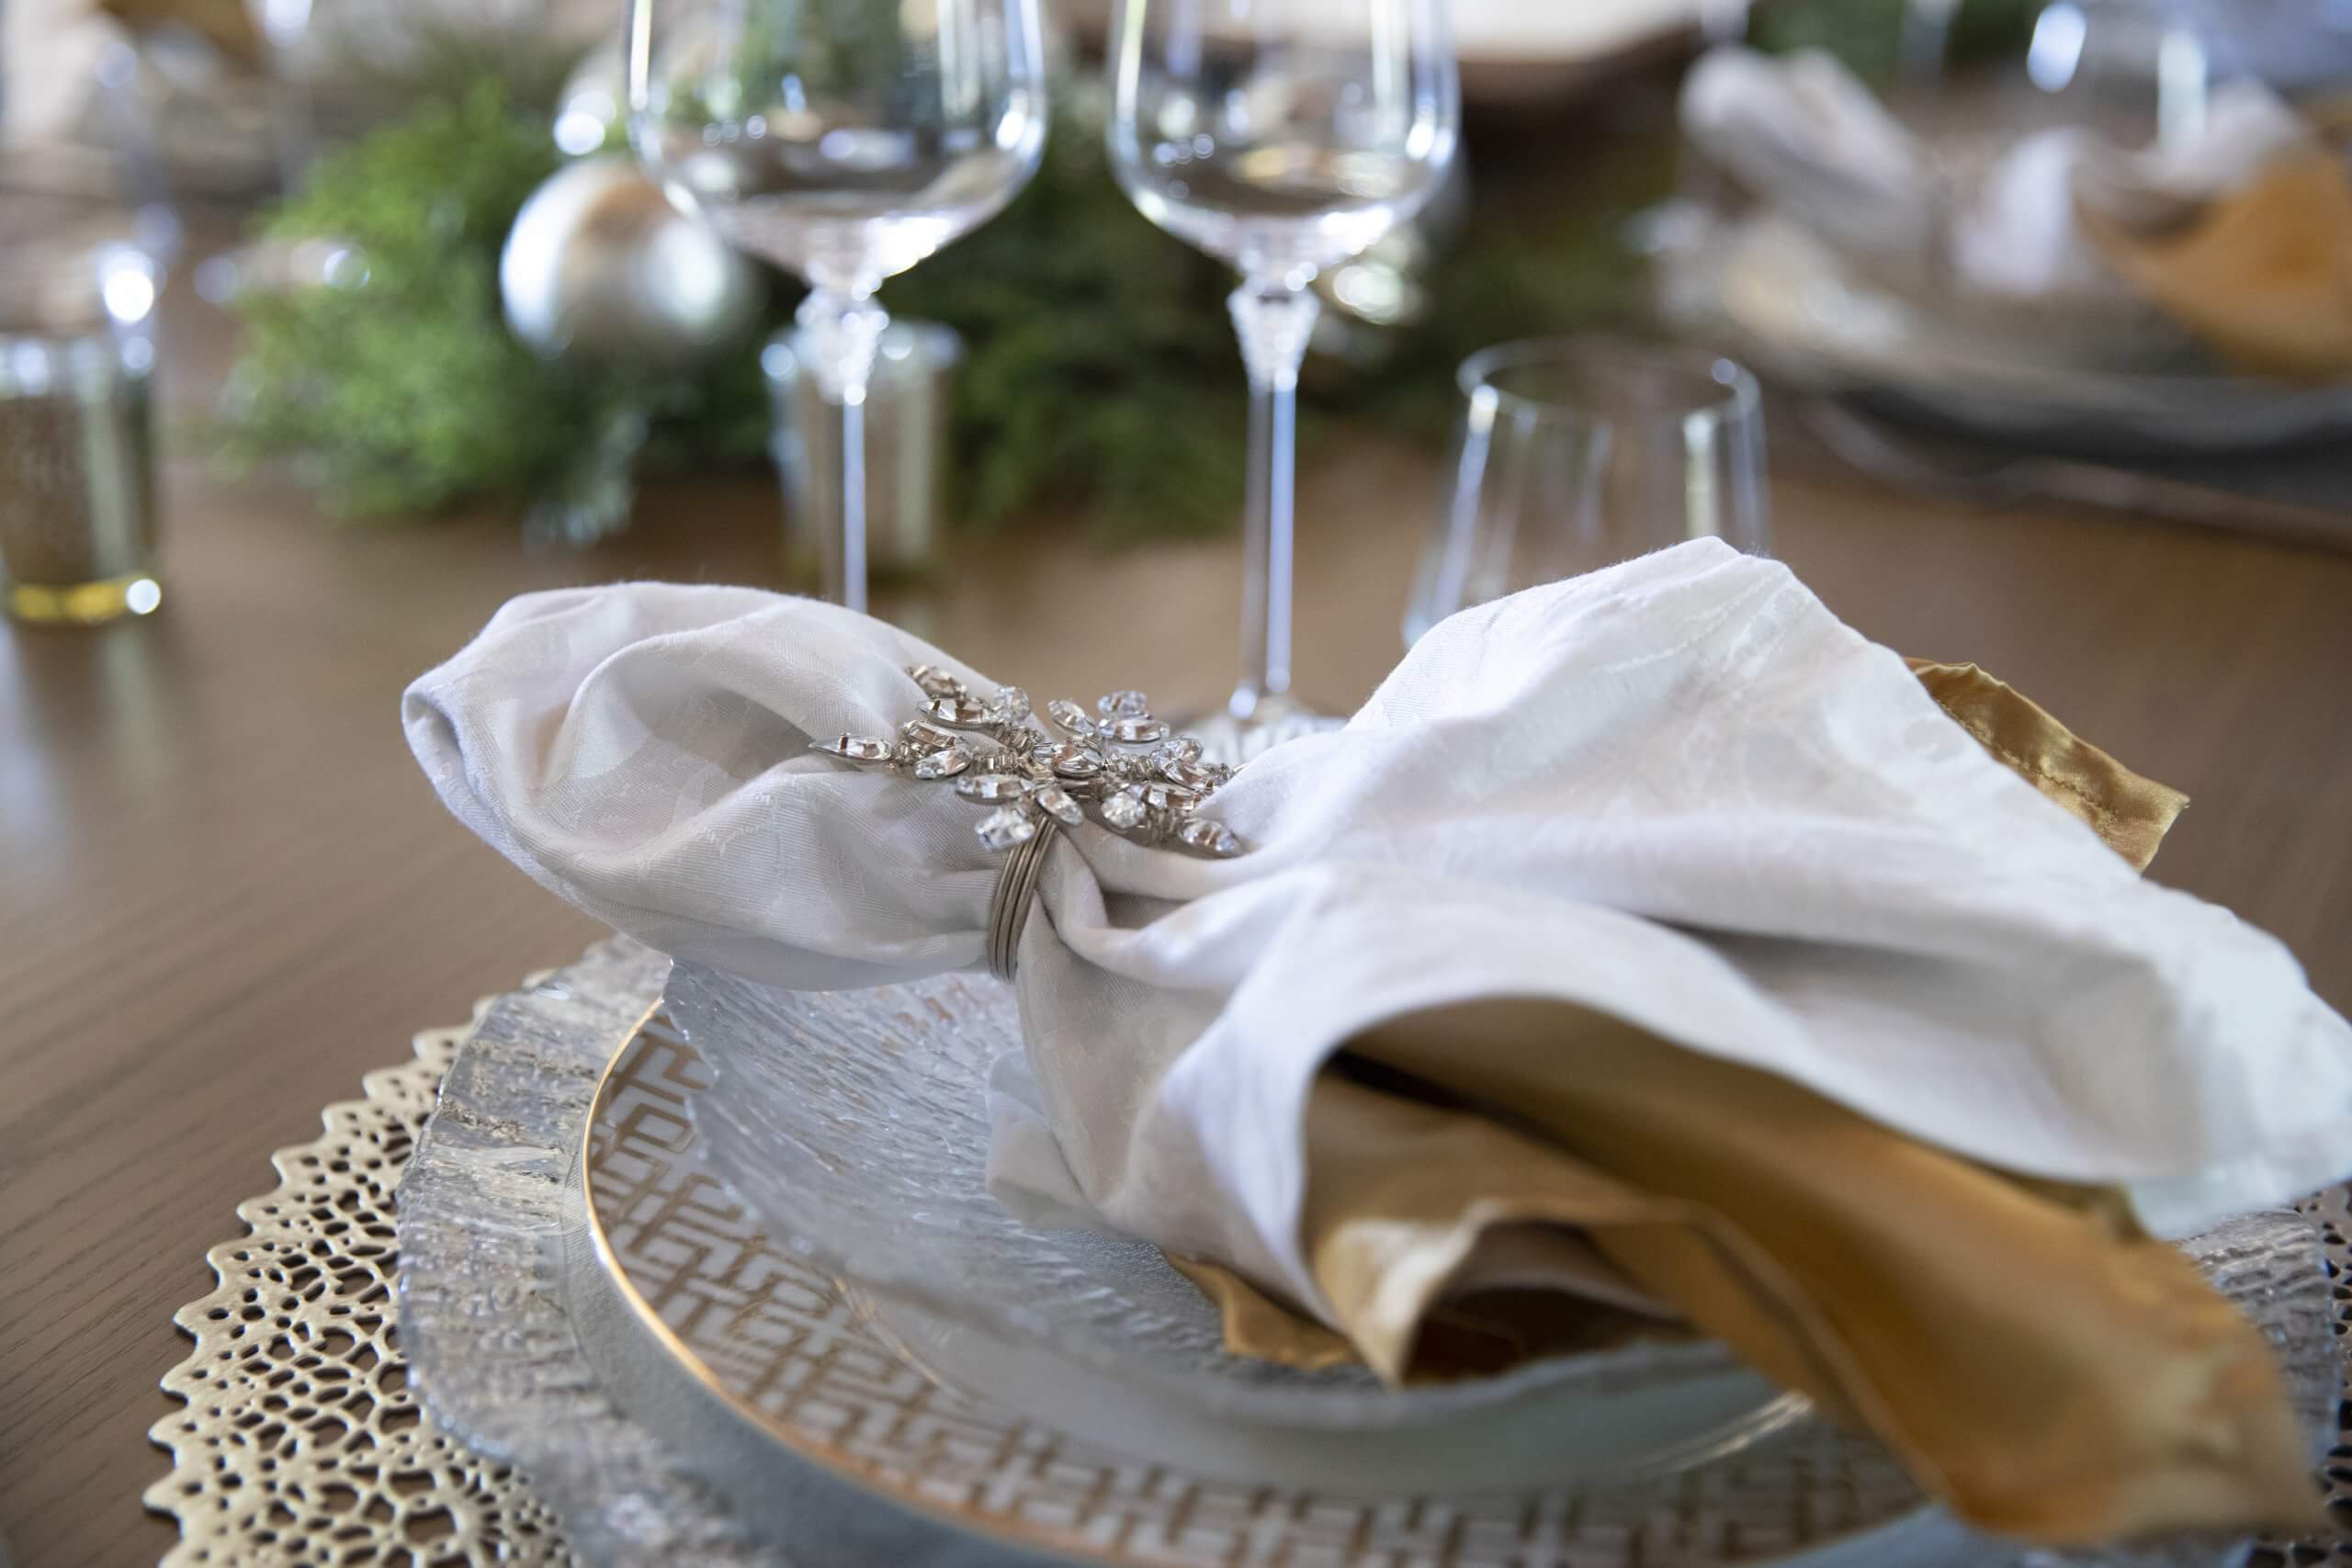 Christmas table setting using gold, silver, crystal and greenery photo by Clay Greenhaw